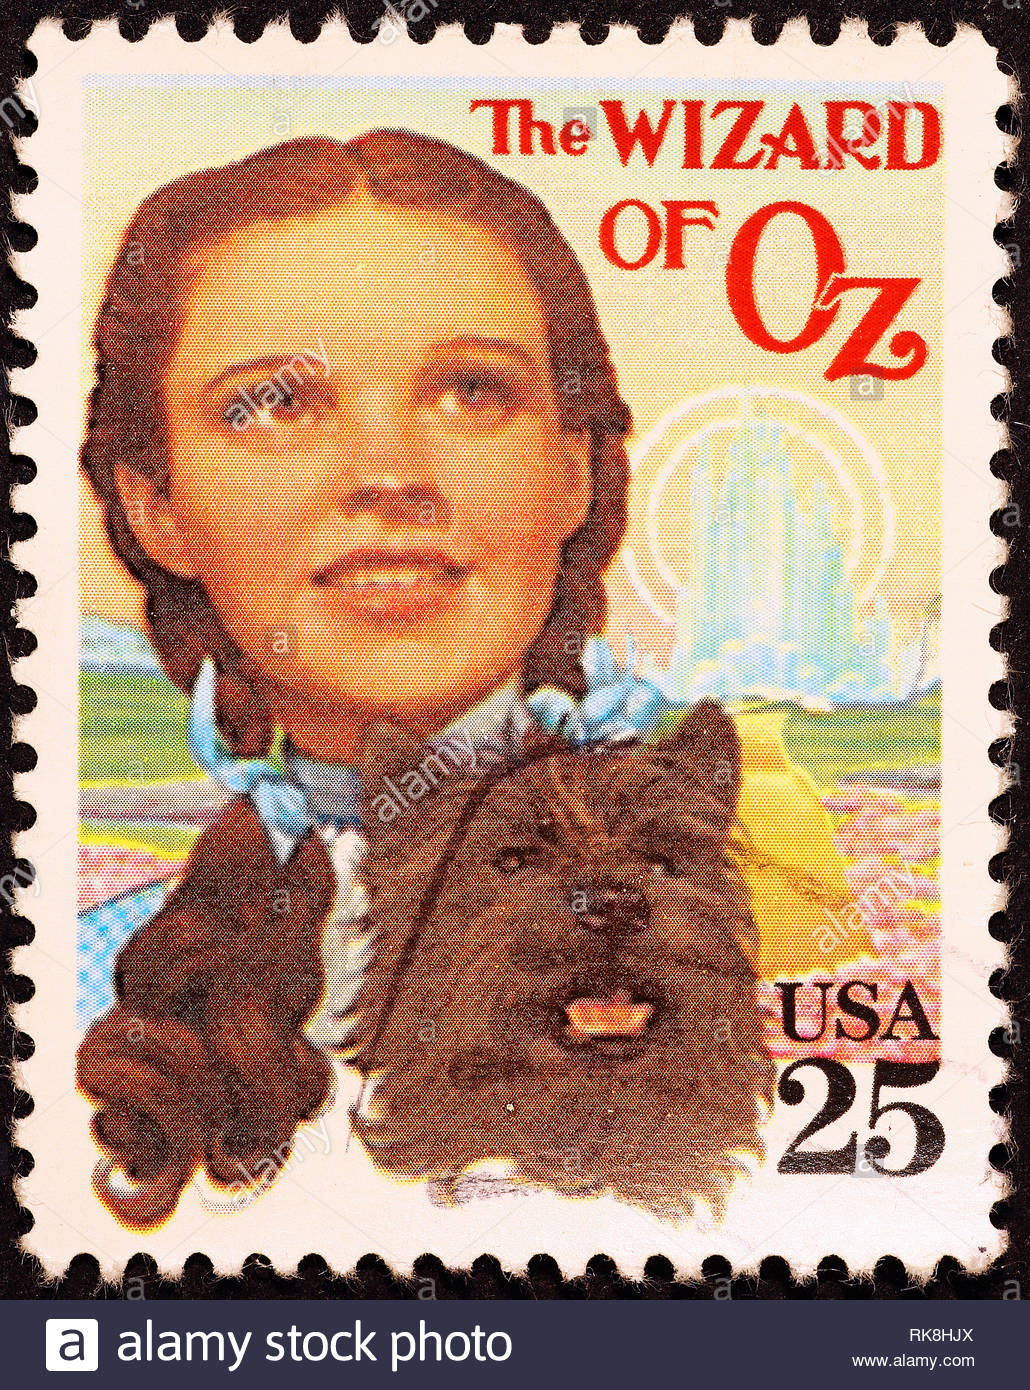 Movie Wizard of Oz on american postage stamp - Stock Image